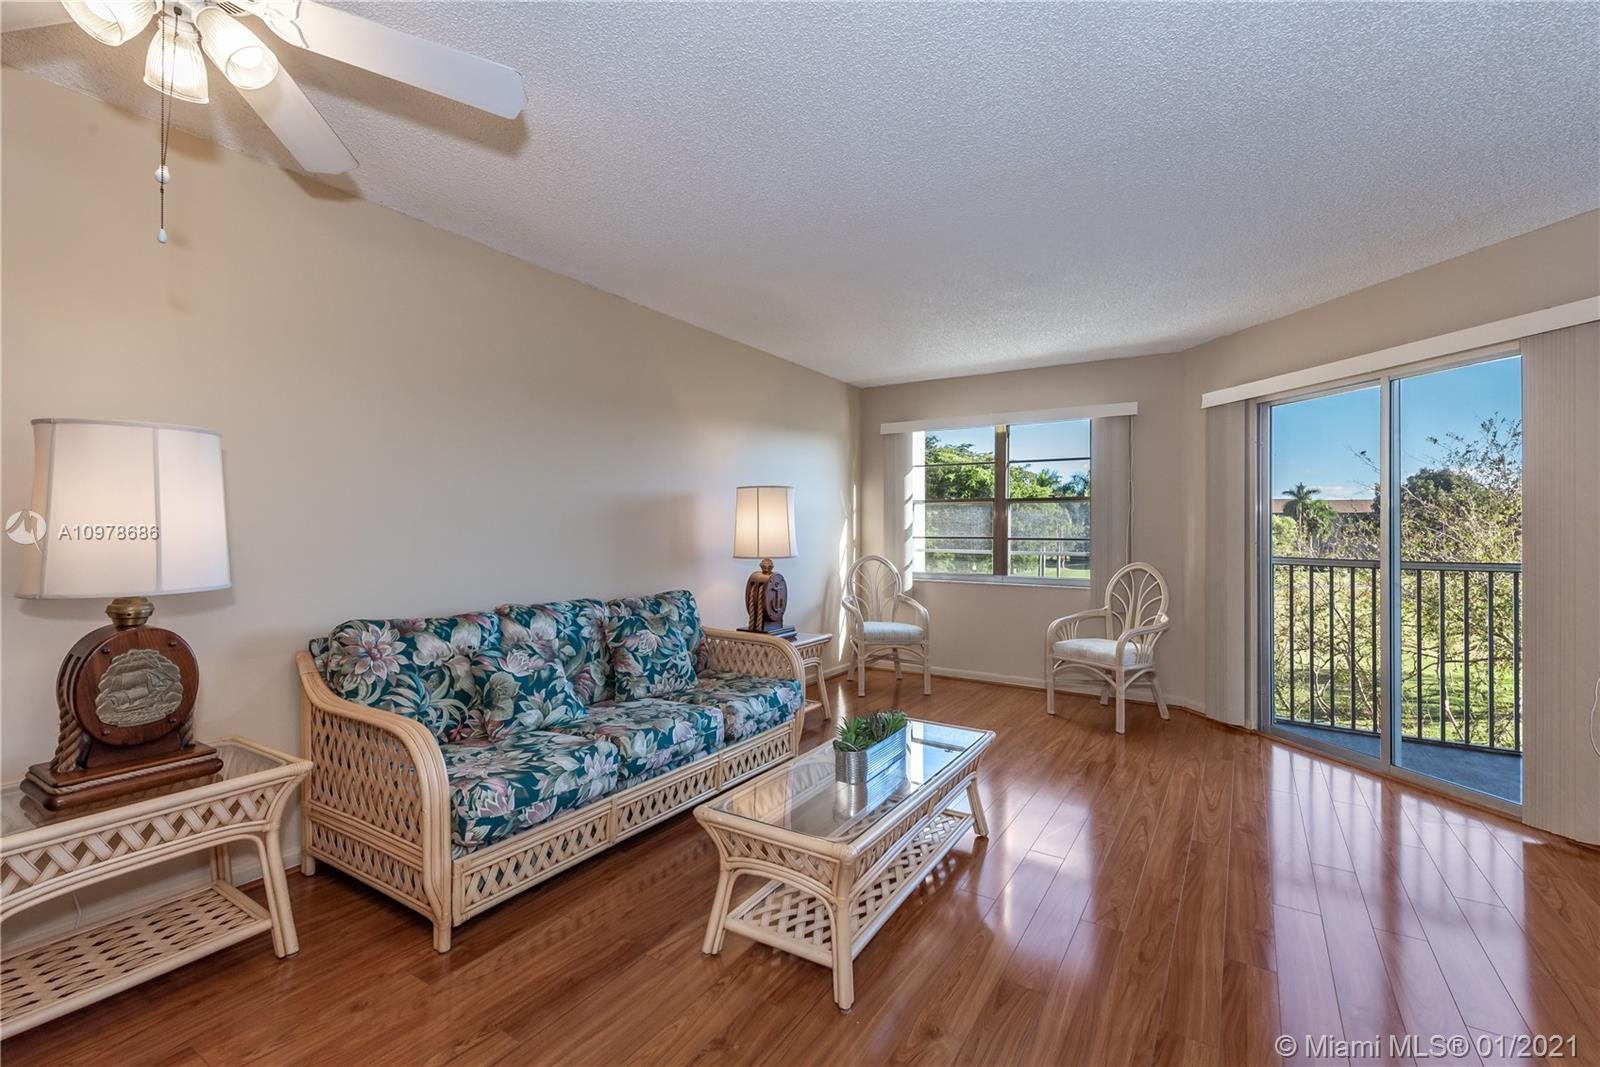 Beautiful and bright condo located in the heart of Pembroke Pines. Walk into this beautiful 1 bed 1 bath unit with an amazing view to enjoy your coffee in the mornings. Spacious kitchen to prepare delicious meals and with plenty of cabinet space. Beautiful and shiny wood floors throughout. Completely modern and renovated bathroom. Washer and dryer conveniently located inside the unit; assigned parking & plenty of guest parking for family and friends. The property is move-in ready. Century Village is one of Pembroke Pines' most desirable active adult communities. Enjoy resort-style living, with endless amenities: million-dollar clubhouse. The community is located next to the shop of Pembroke Gardens and major highways. Schedule a showing now! Don't miss this opportunity!